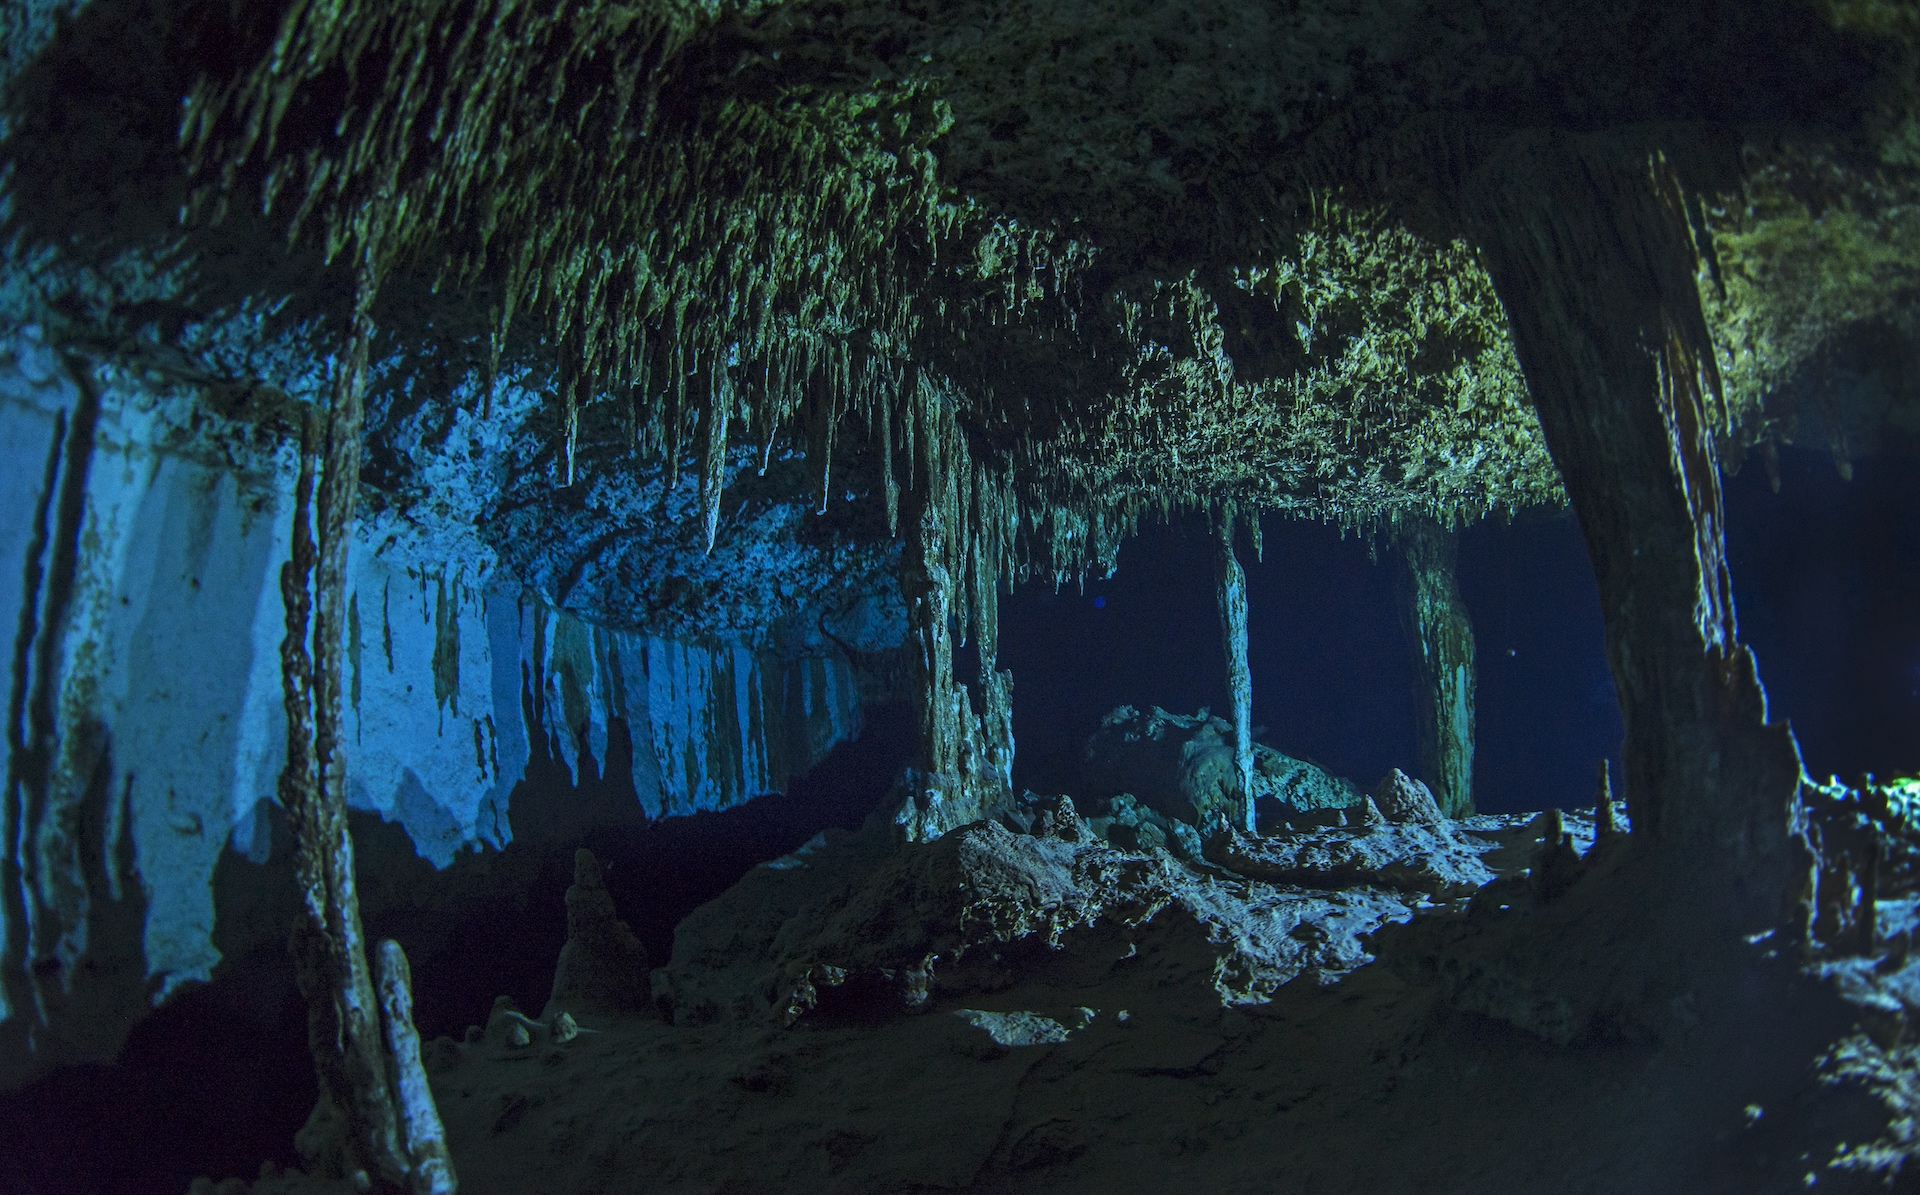 Dos Ojos (two eyes) is a stunning cenote with fantastic stalactite and stalagmite formations, a bat cave, small fish, and a type of freshwater shrimp in the beautifully clear fresh water. Further into its depths I set up halogen lights in the dark cave to photograph the beauty of the columns.